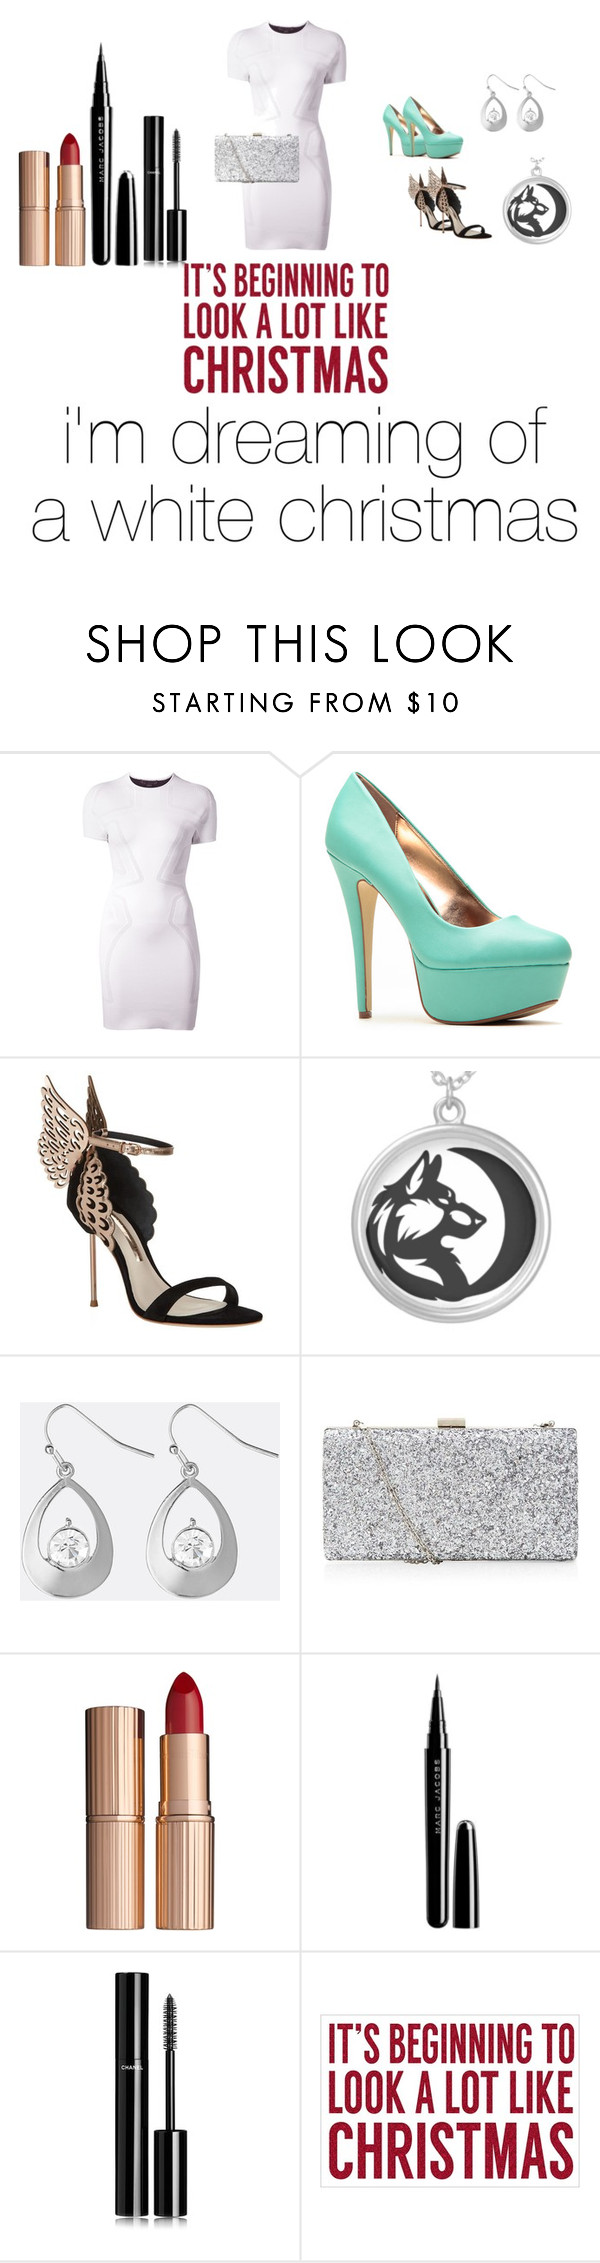 """""""Christmas"""" by alexis3henry ❤ liked on Polyvore featuring Alexander Wang, Sophia Webster, Avenue, Charlotte Tilbury, Marc Jacobs, Chanel and Sixtrees"""